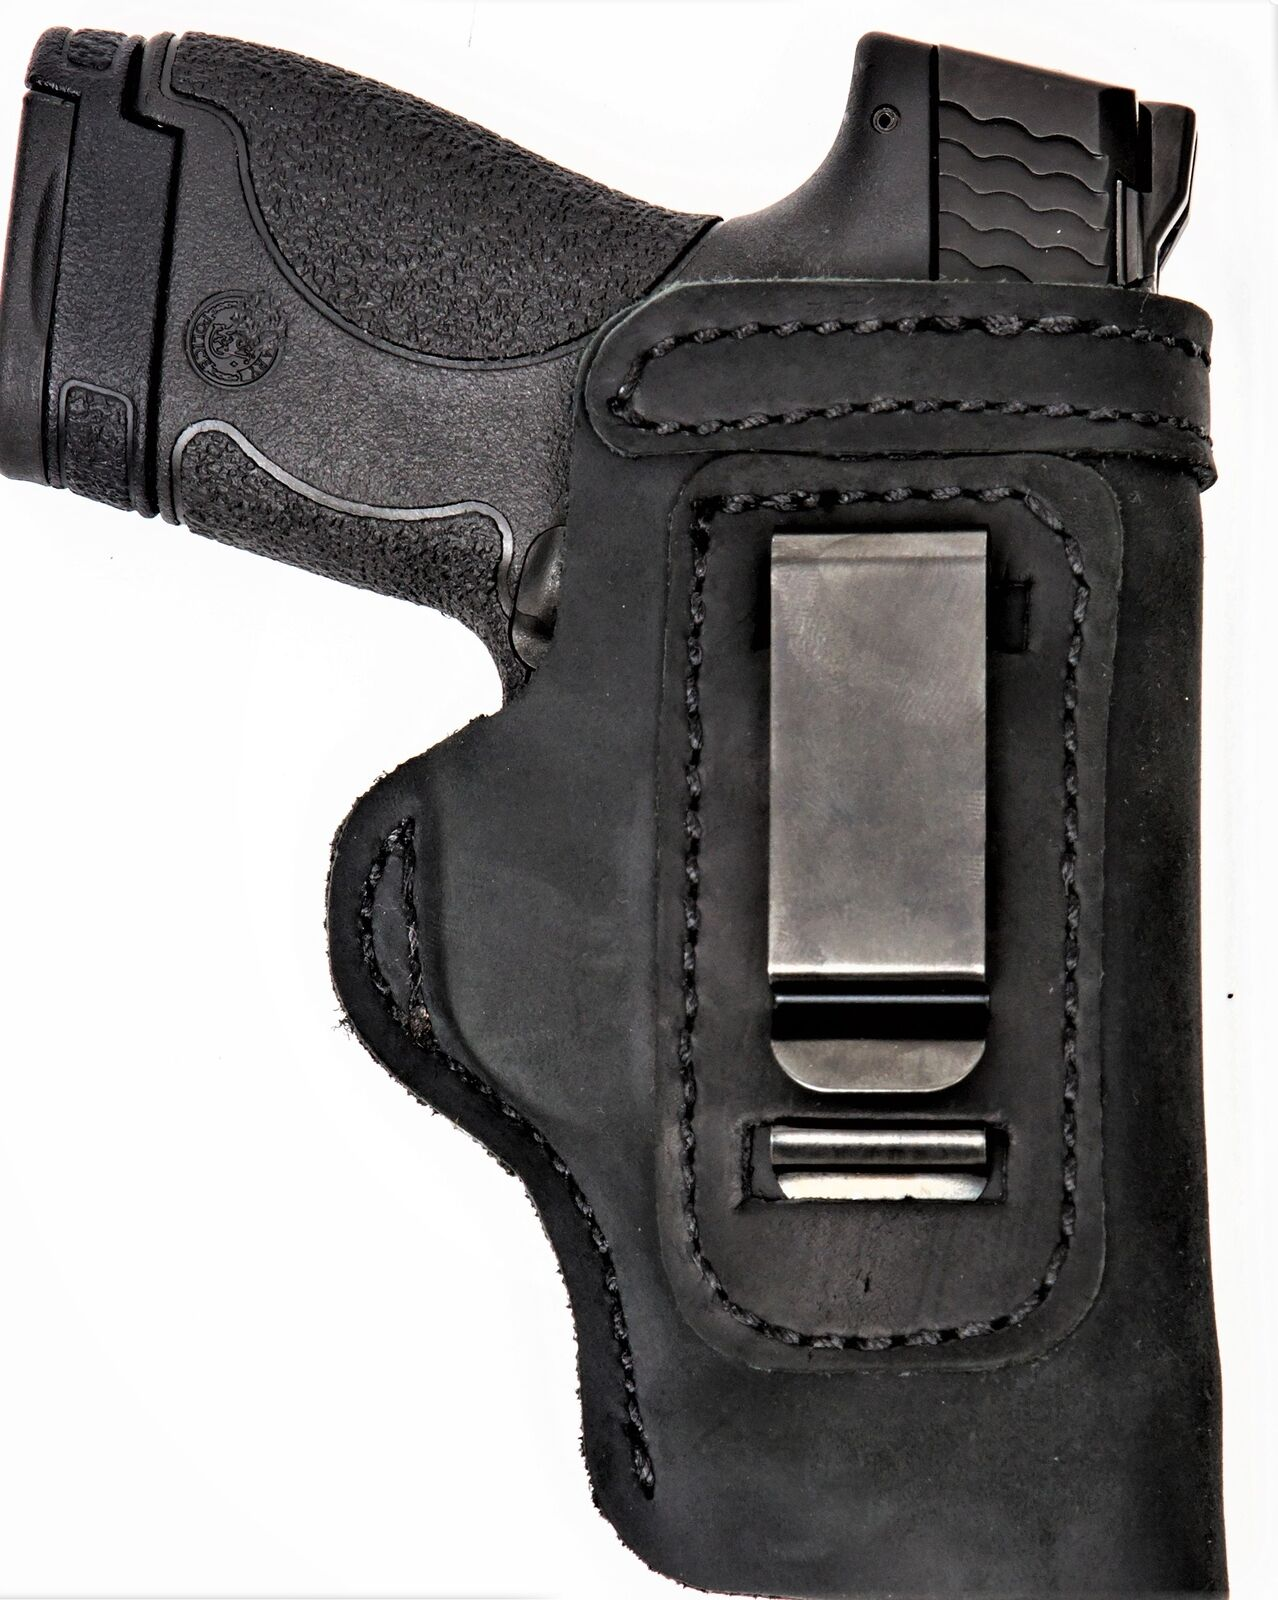 Pro Carry LT RH LH OWB IWB IWB OWB Leder Gun Holster For Colt Defender 6051f6